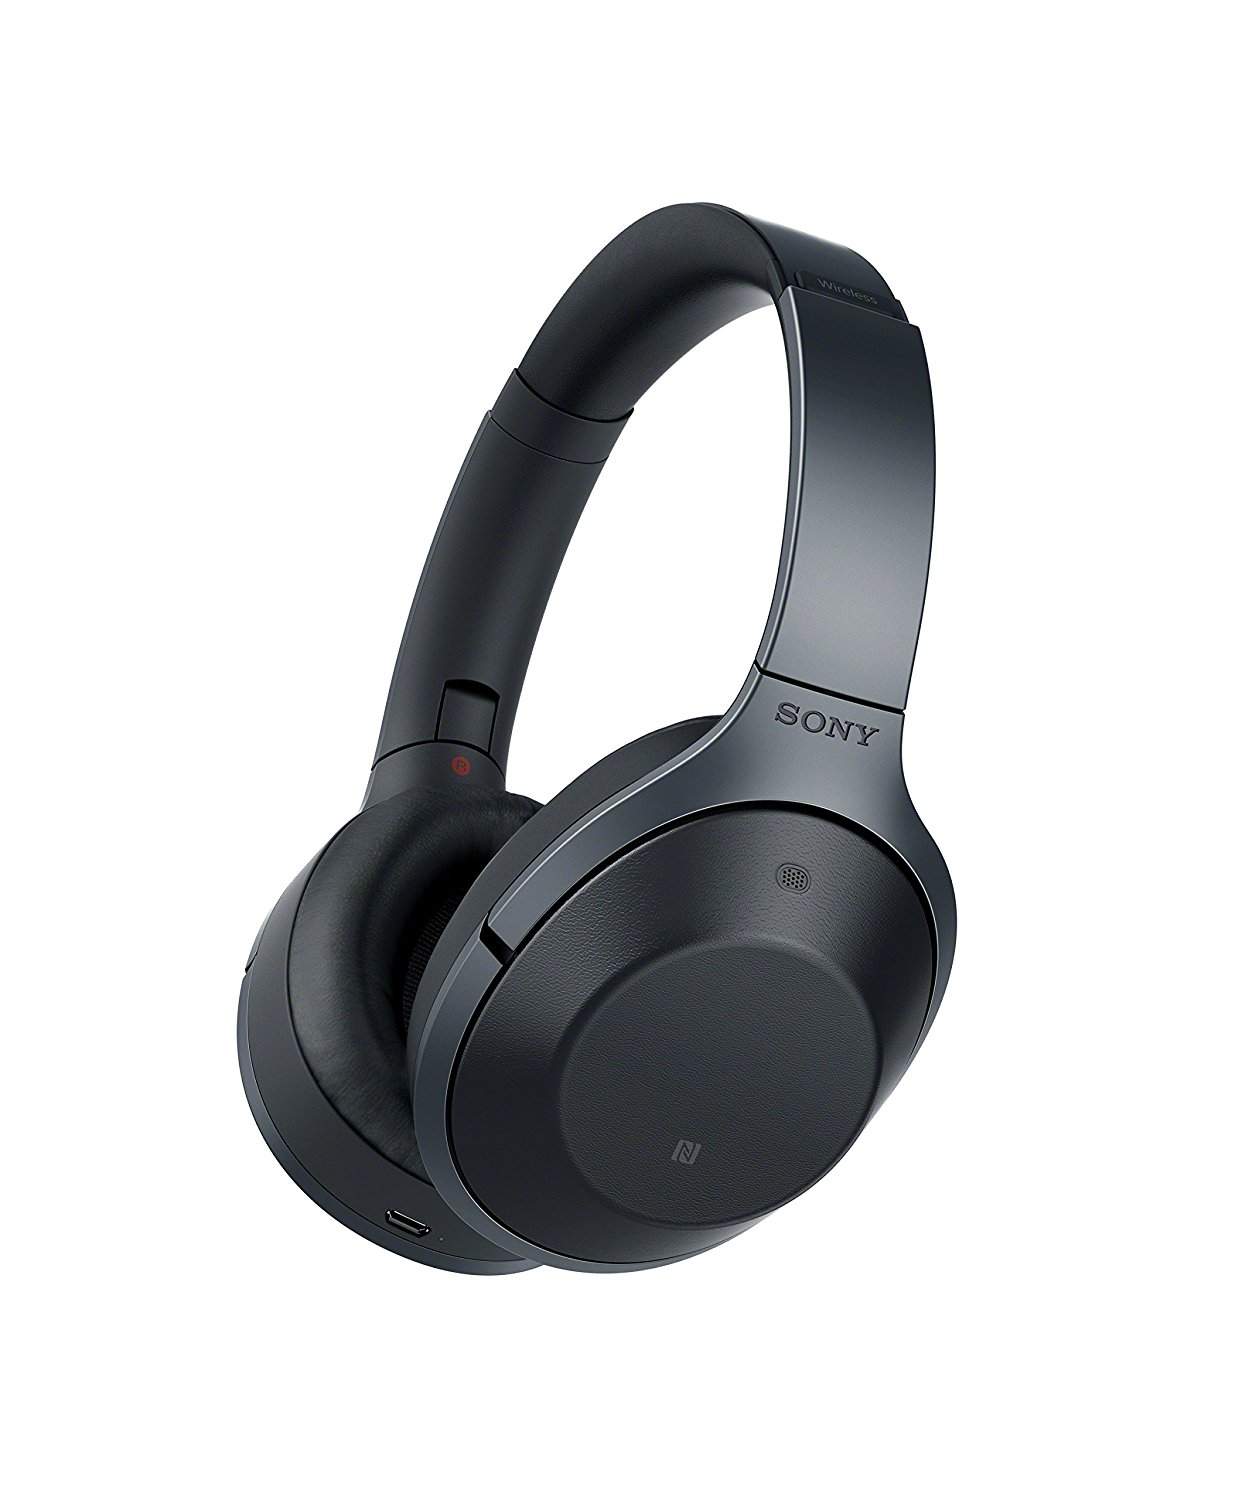 Sony Premium Noise-Cancelling Headphones